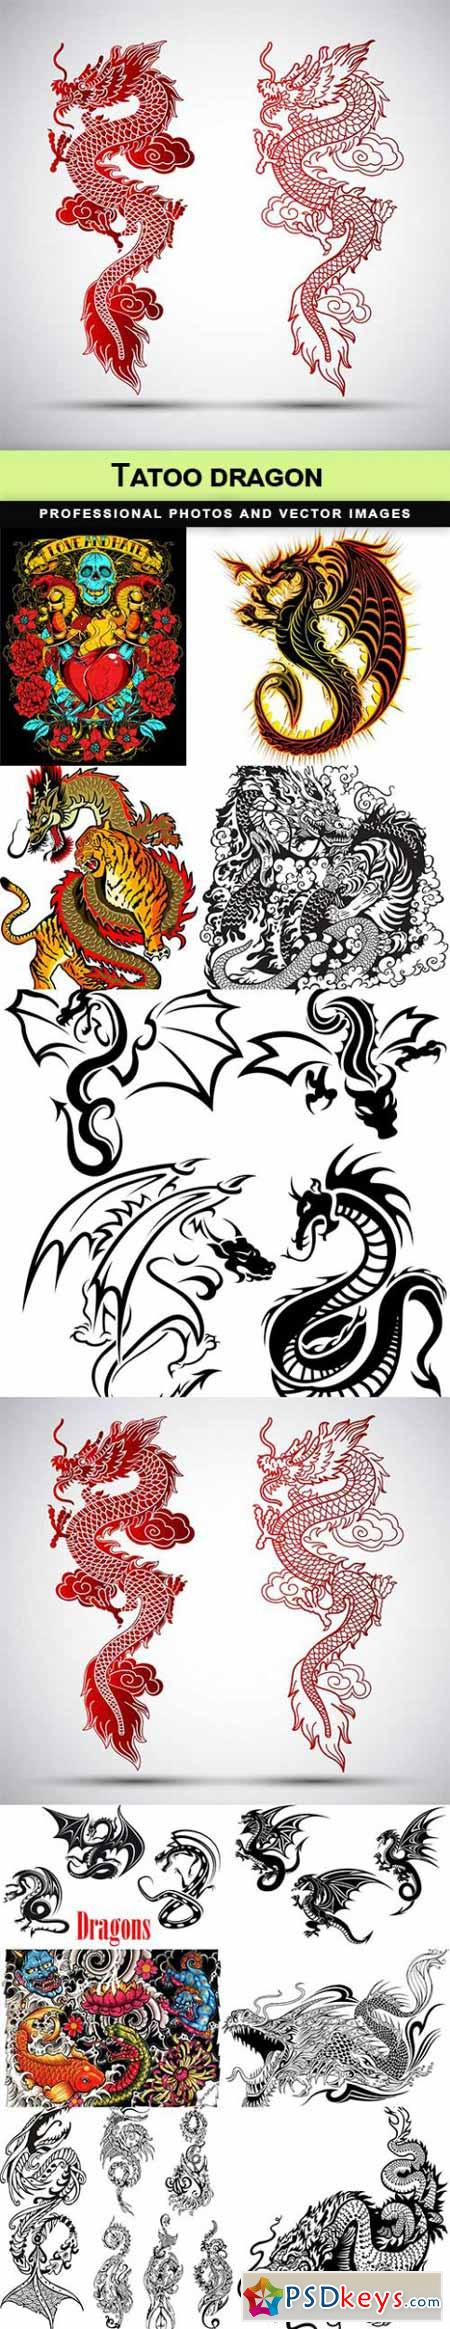 Tatoo dragon - 12 EPS